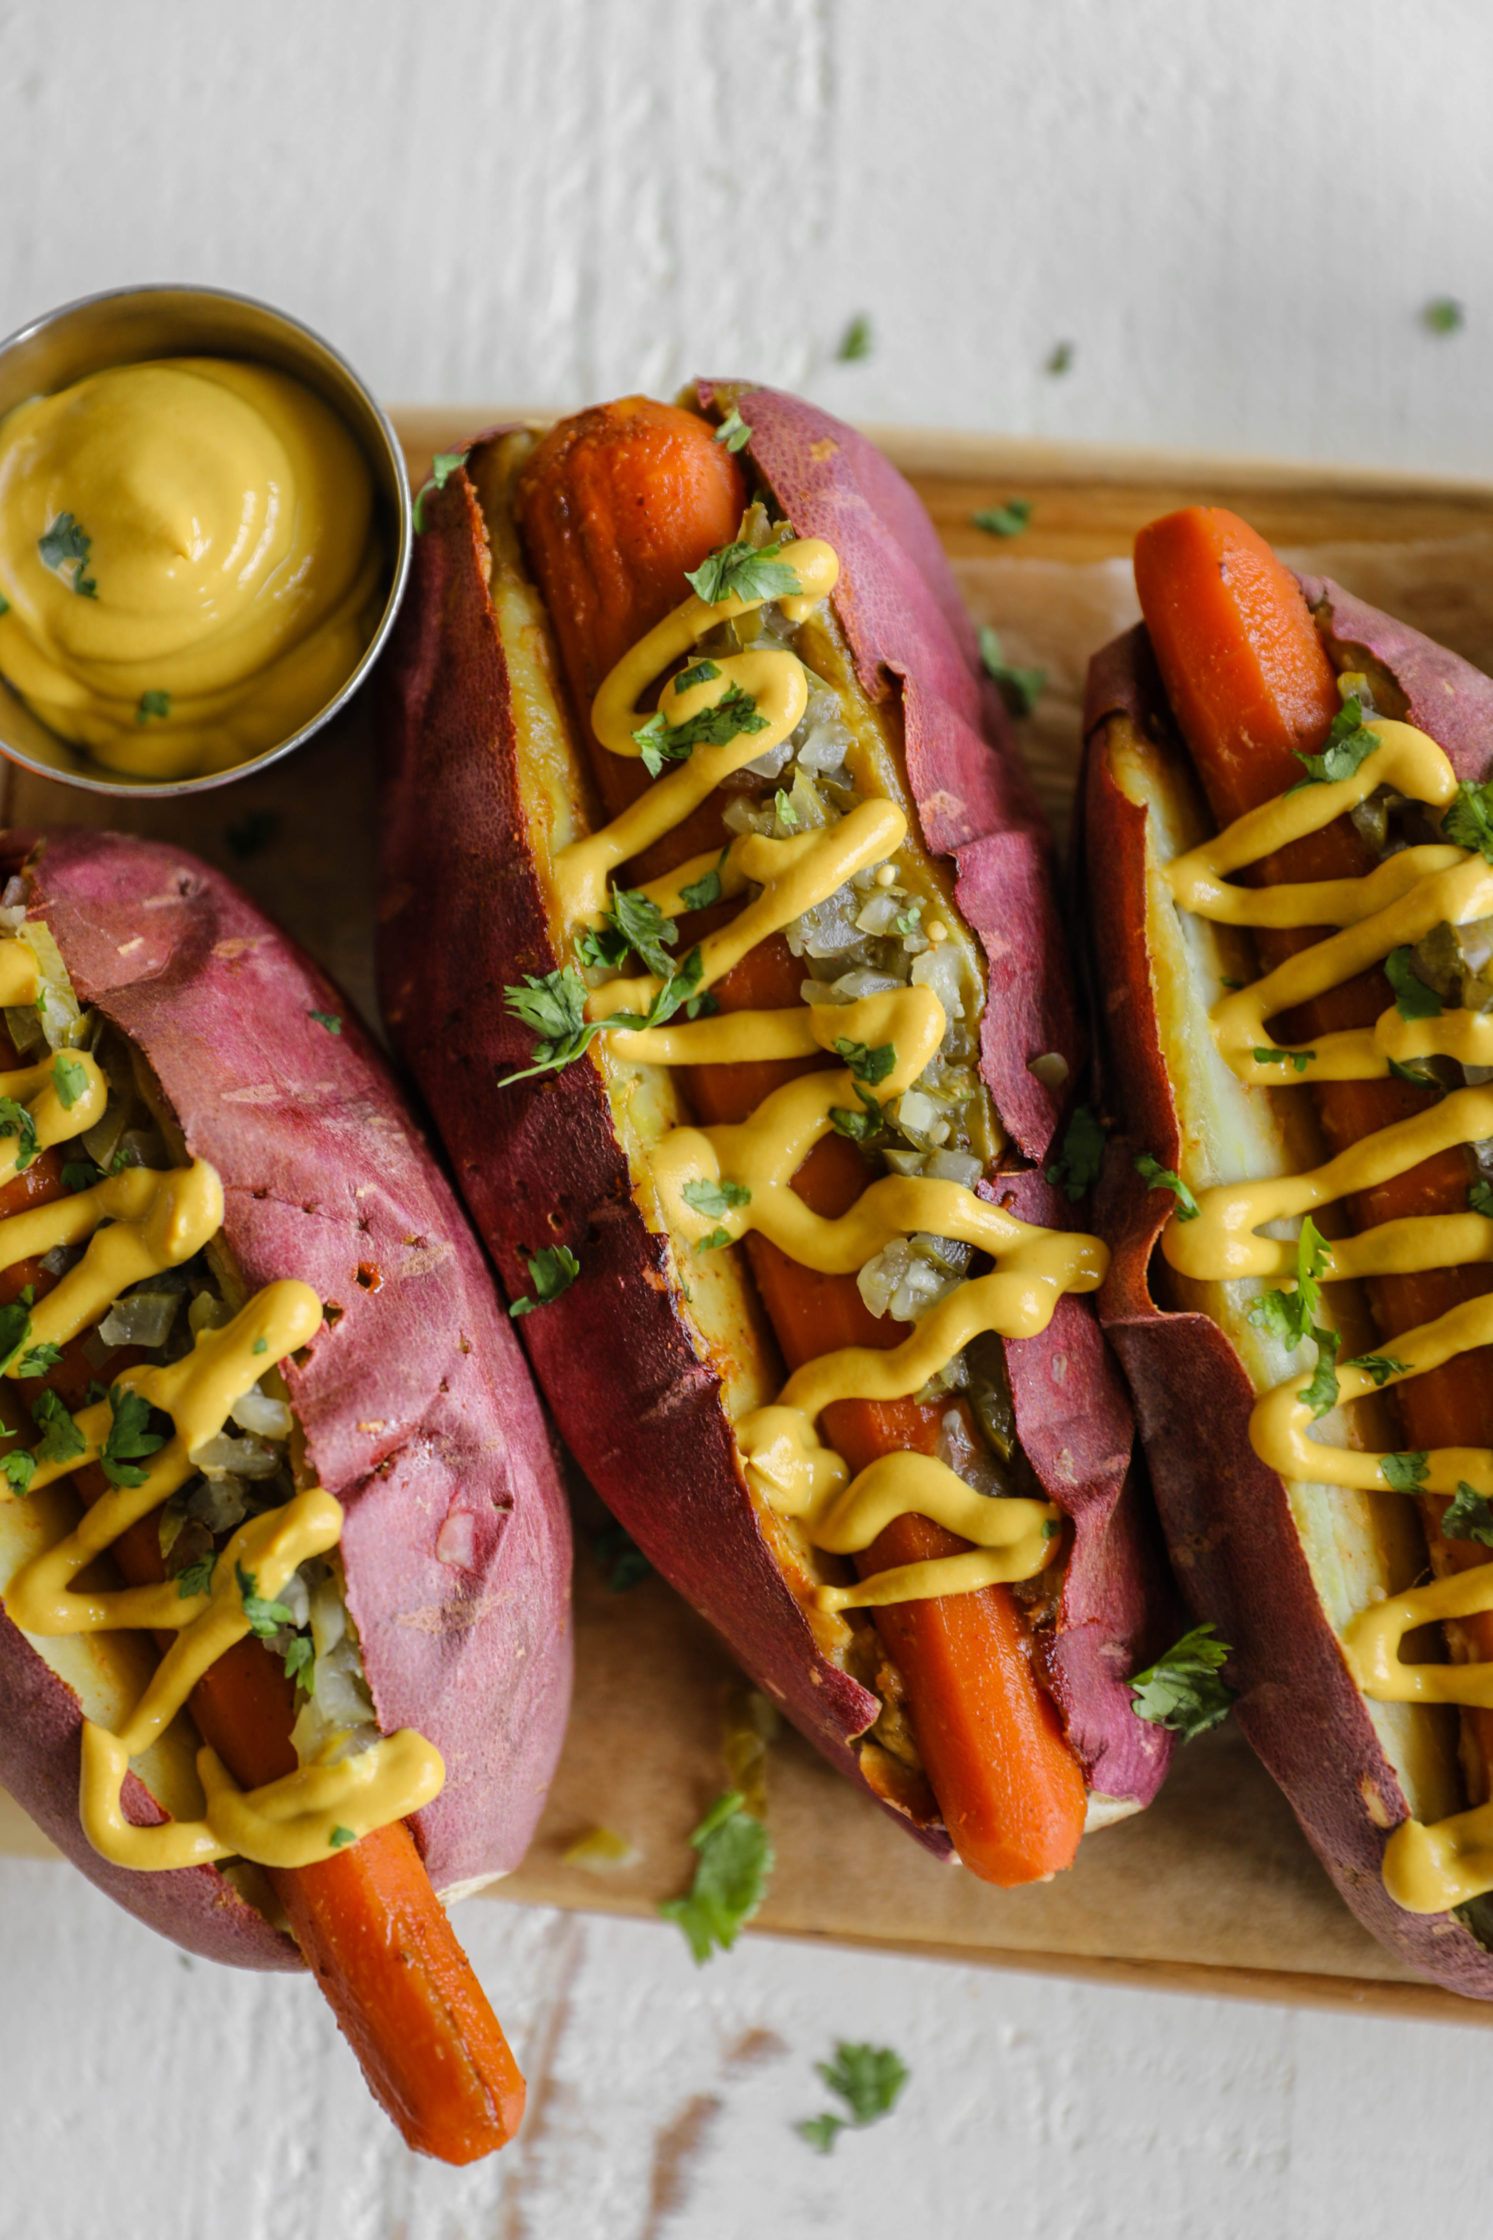 Carrot Hot Dogs with Japanese Yam Buns by Flora & Vino